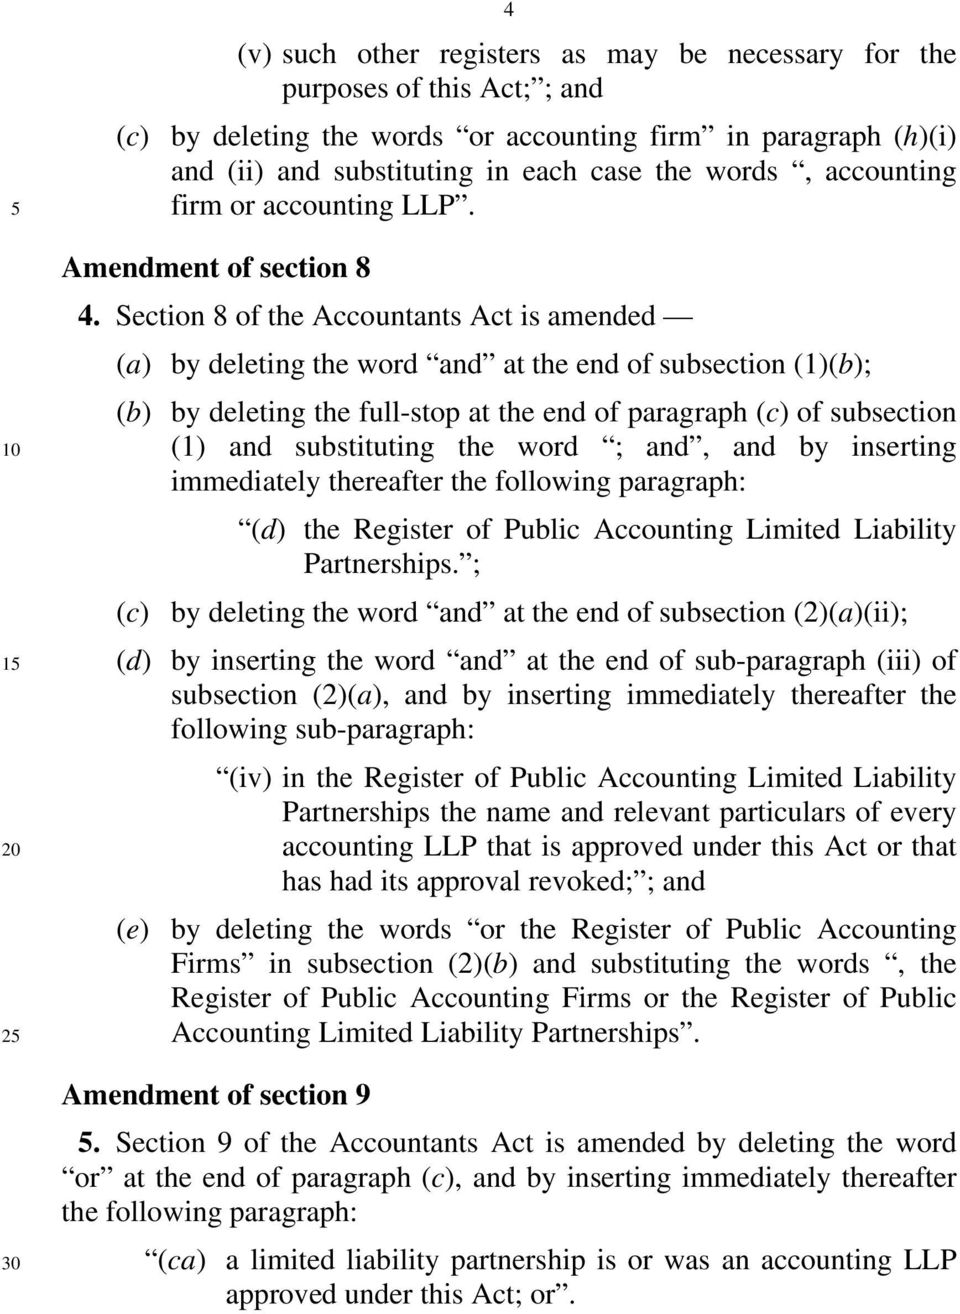 Section 8 of the Accountants Act is amended (a) by deleting the word and at the end of subsection (1)(b); (b) by deleting the full-stop at the end of paragraph (c) of subsection (1) and substituting